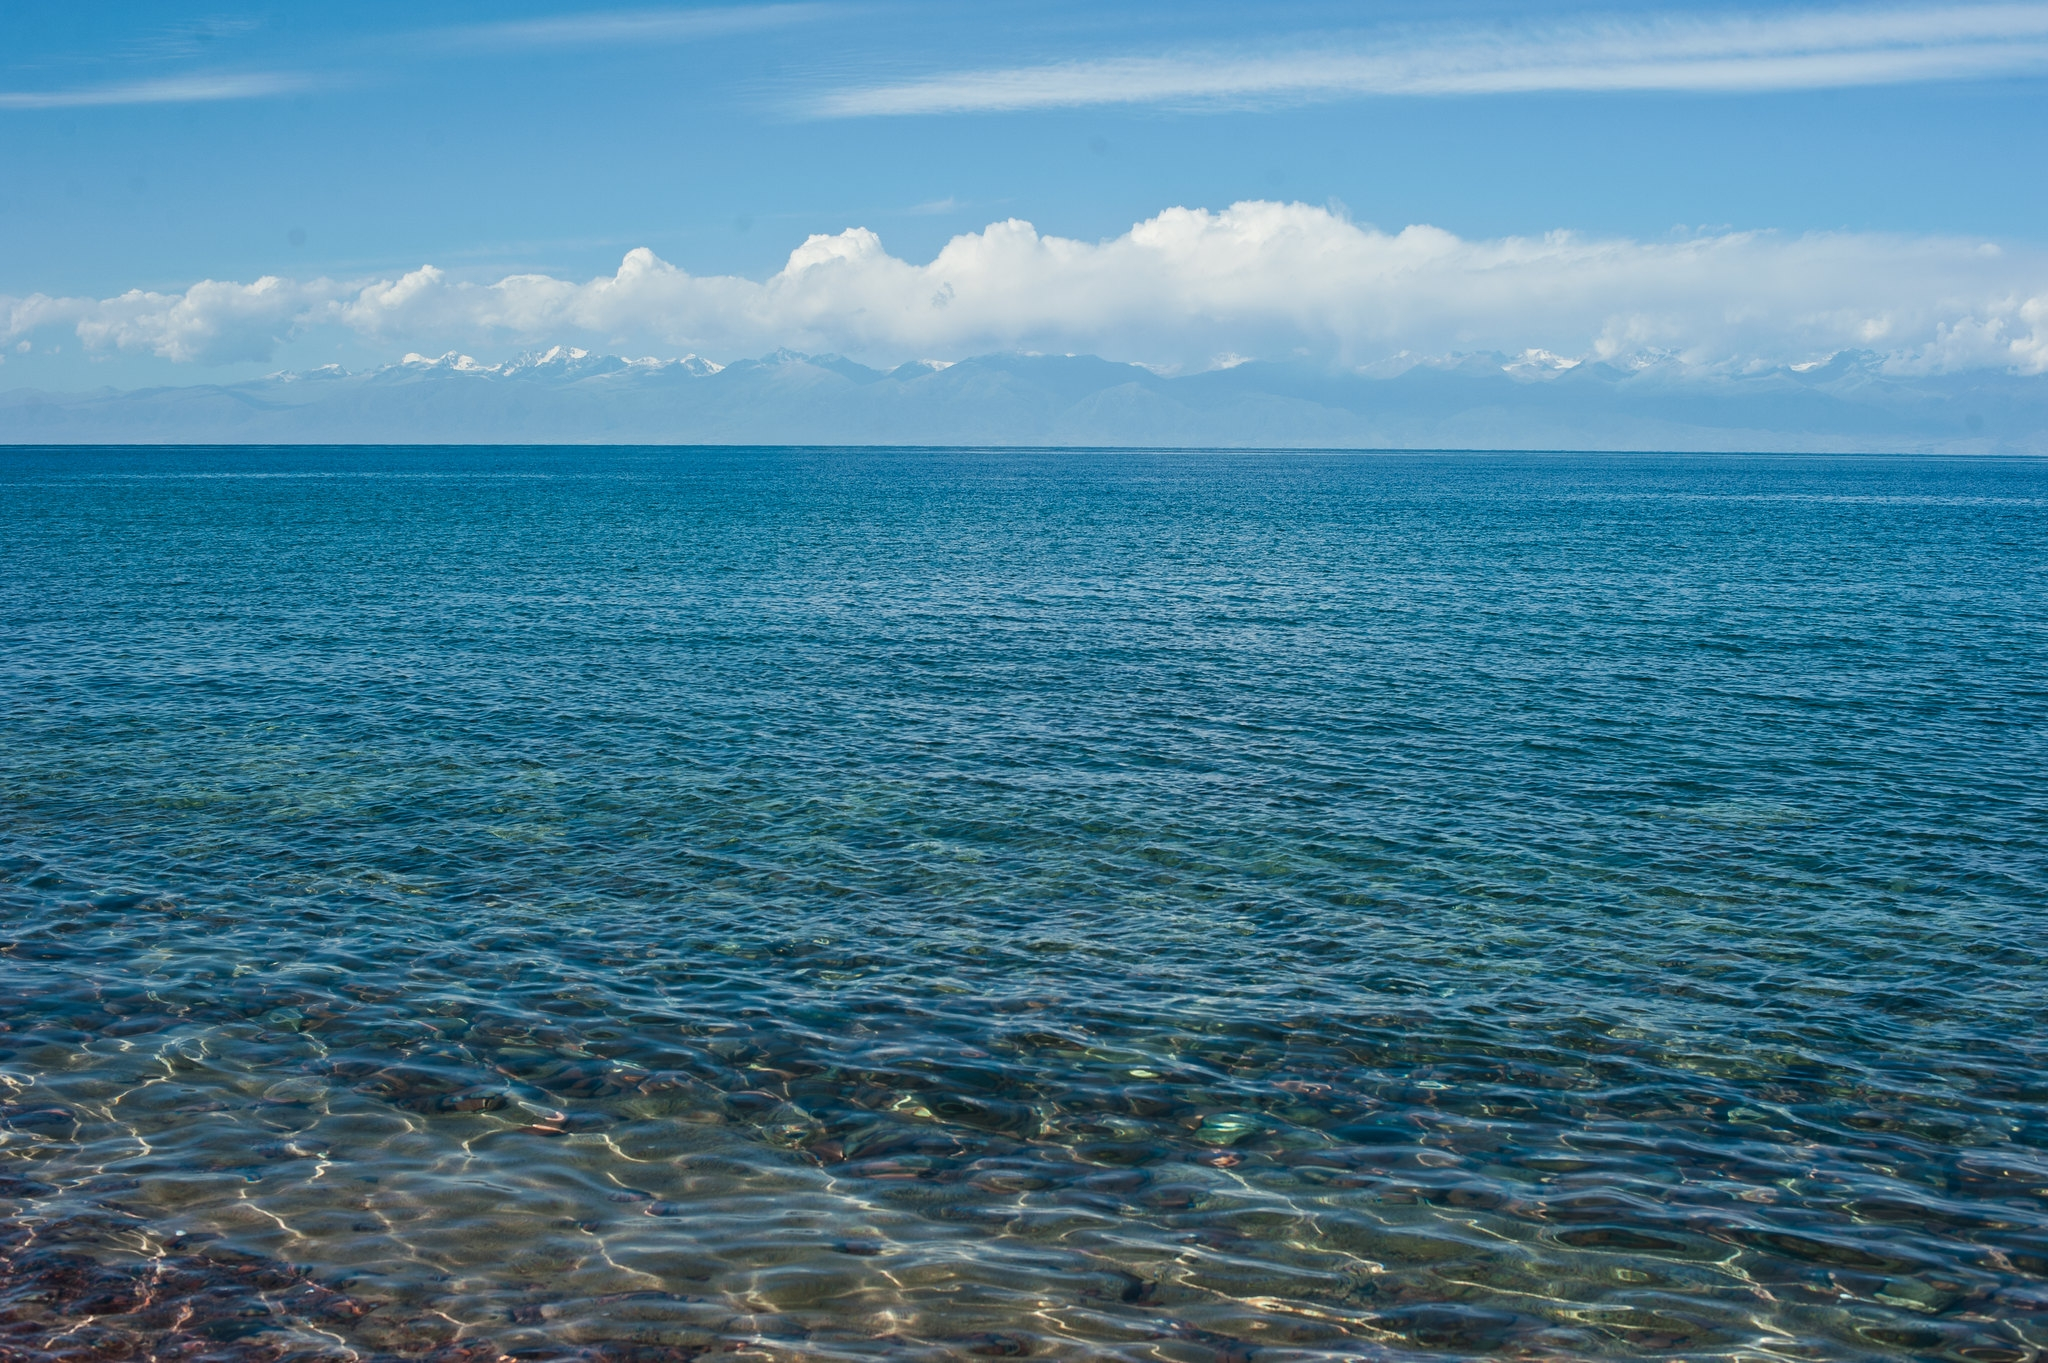 Not sick? Cool: A view of Issyk-Kul that Kazahk tourists are being denied, for now. (Photo: Matthias Buehler/Flickr)